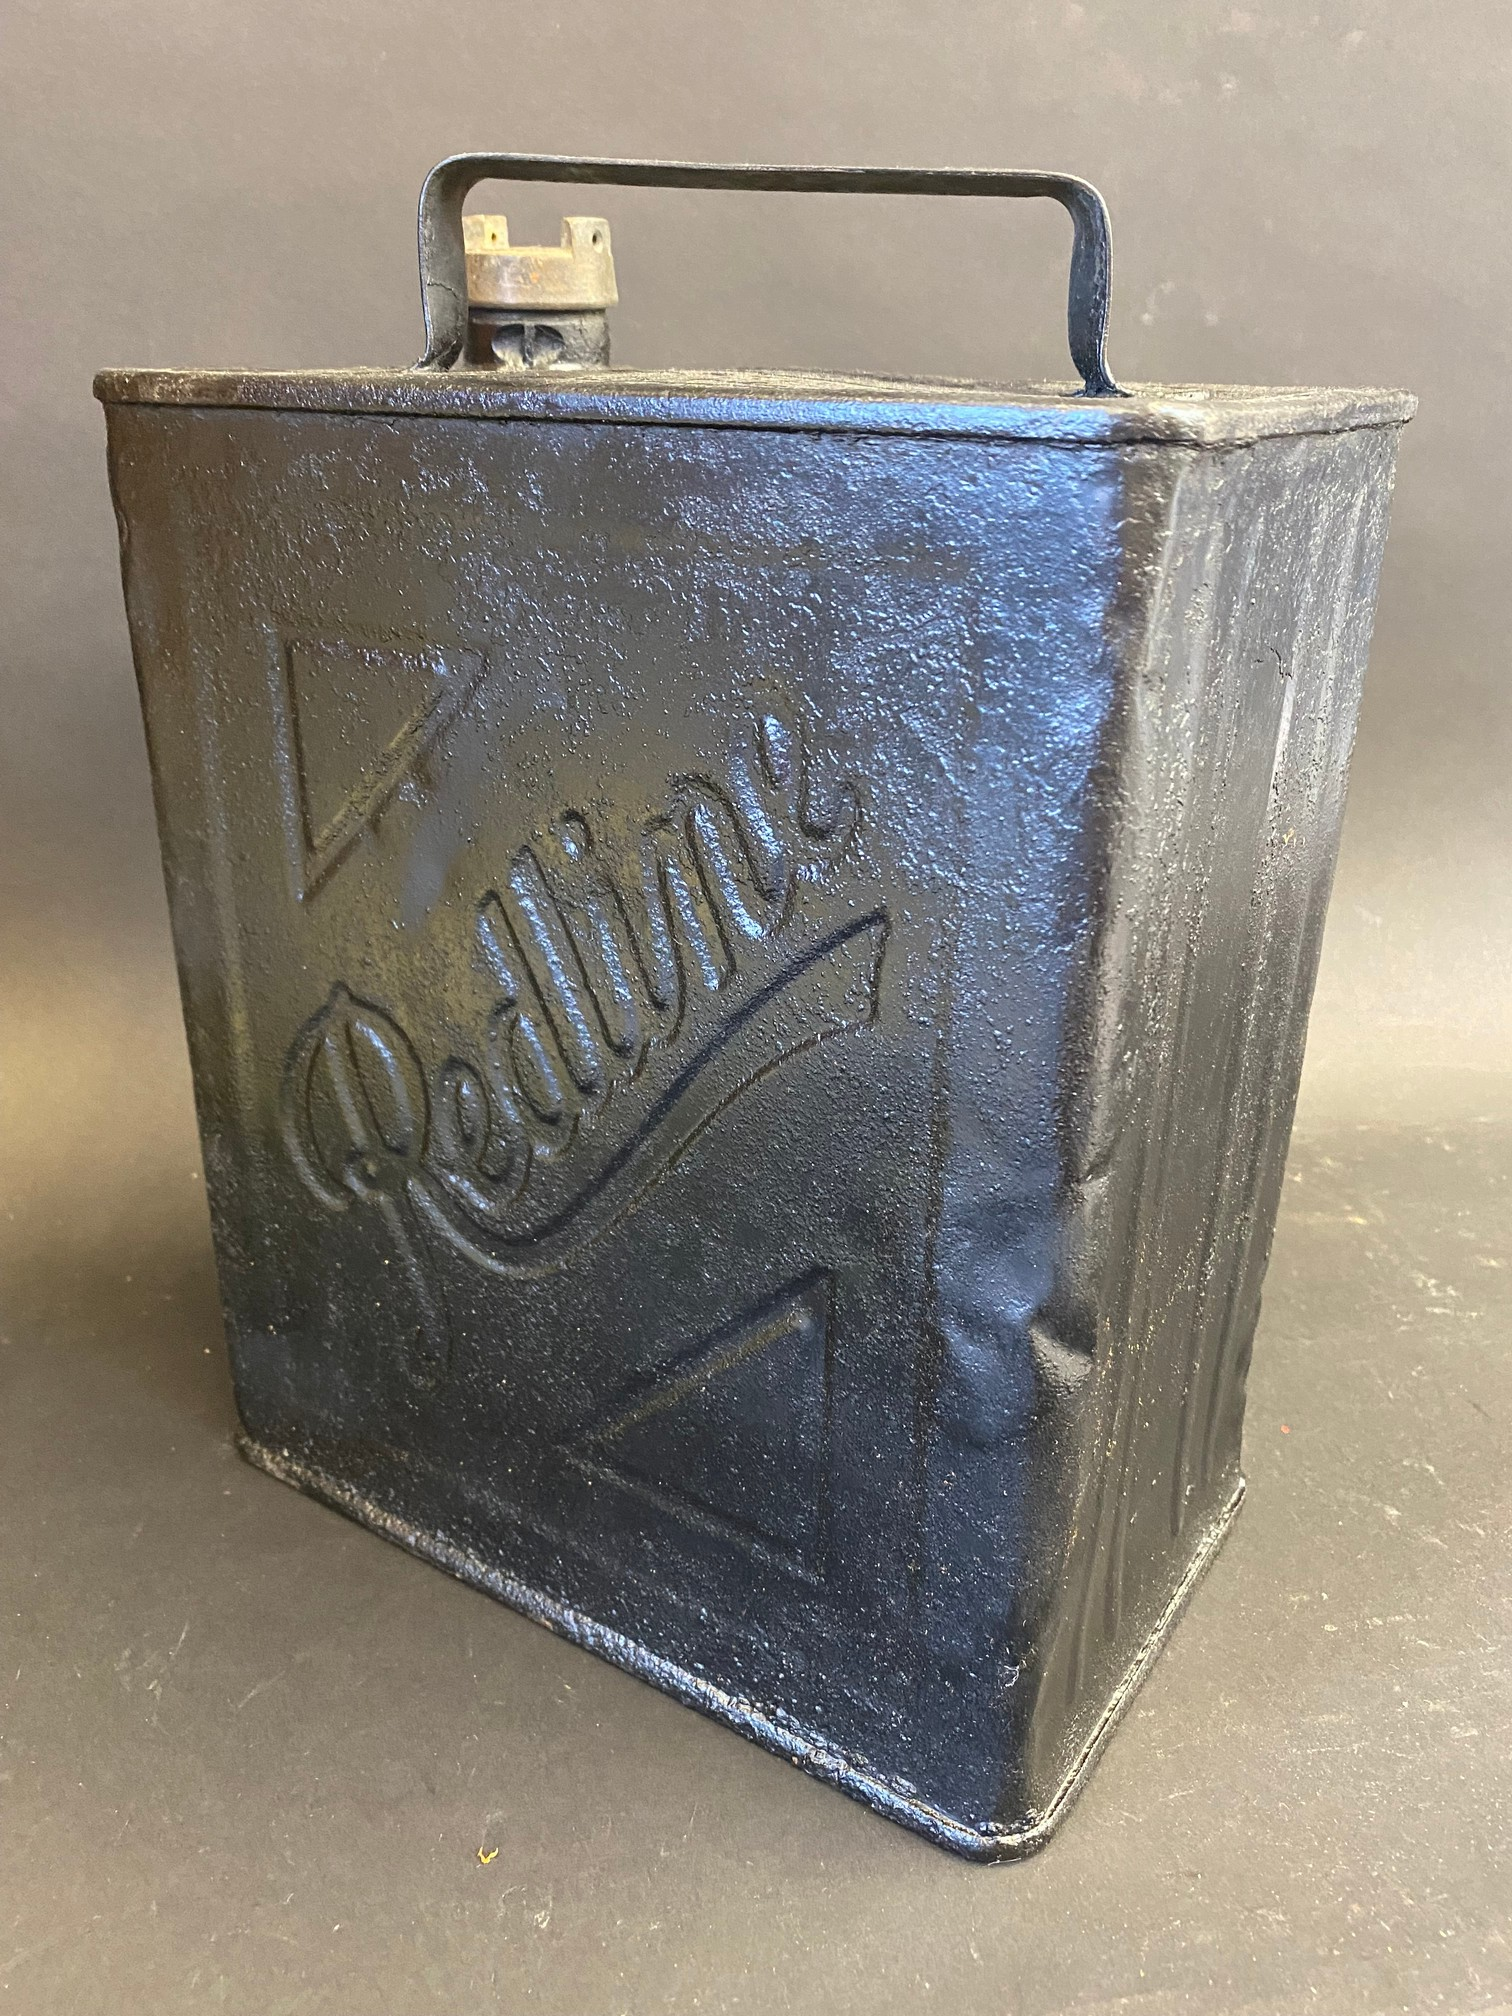 A Redline two gallon petrol can by Valor, indistinctly dated.